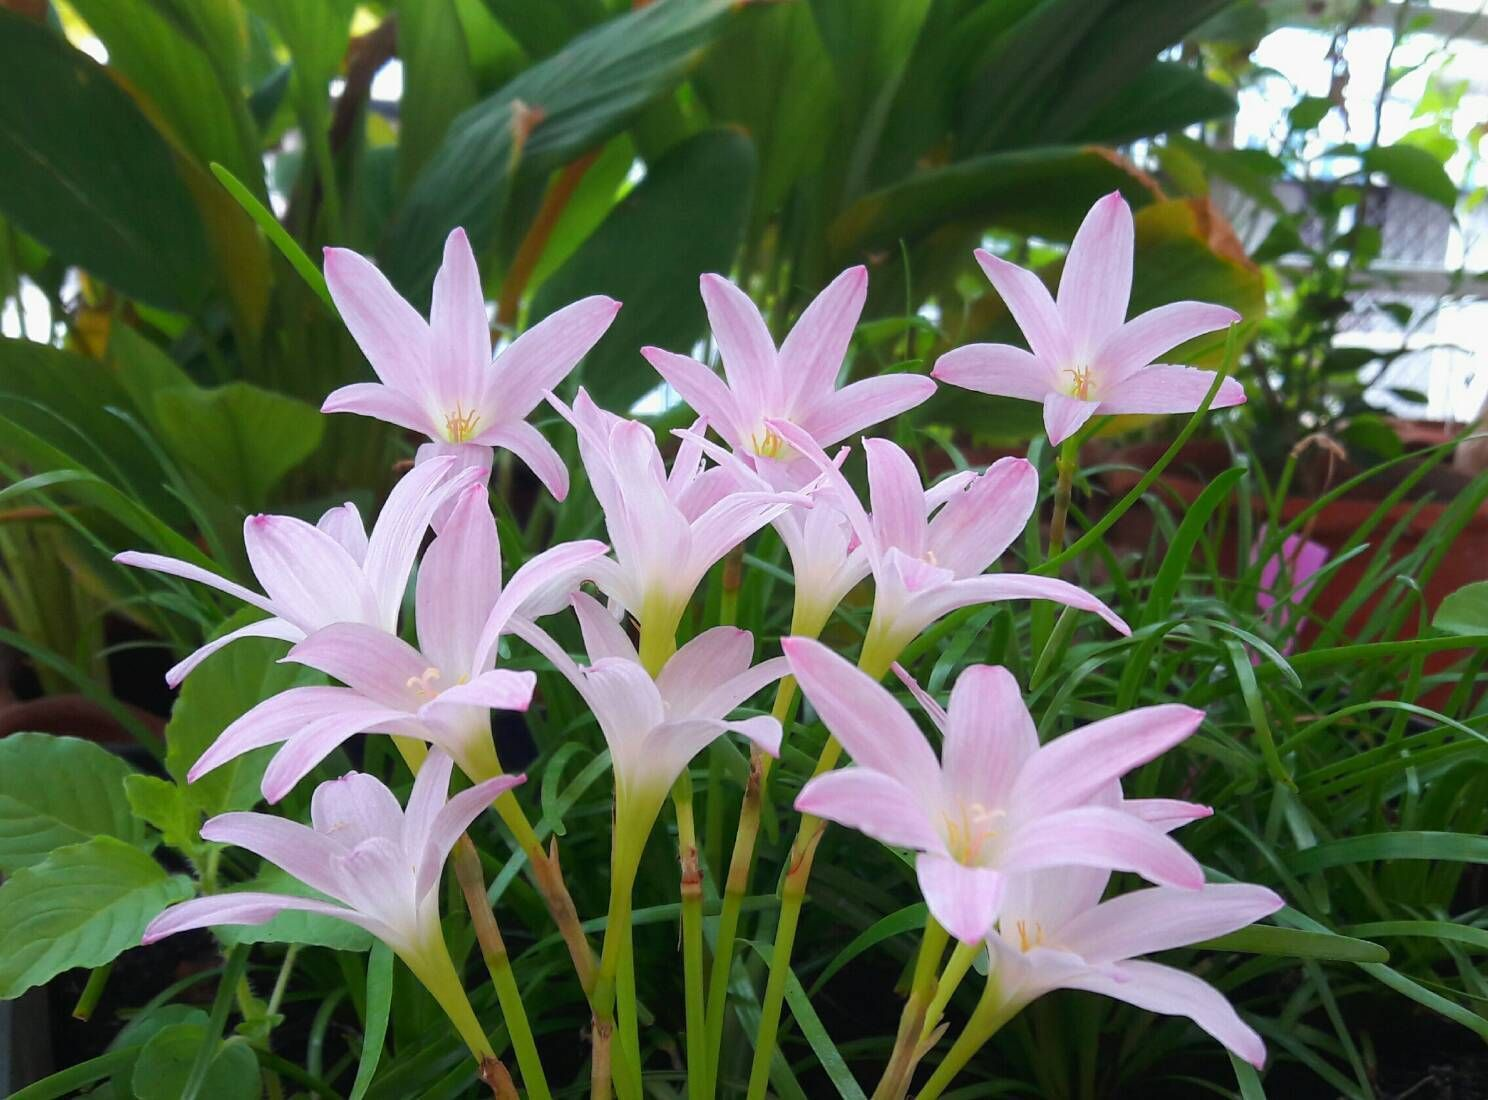 Rain lily bulb zephyranthes first love fairy lily magic lily rain lily bulb zephyranthes first love fairy lily magic lily flowering size ebay izmirmasajfo